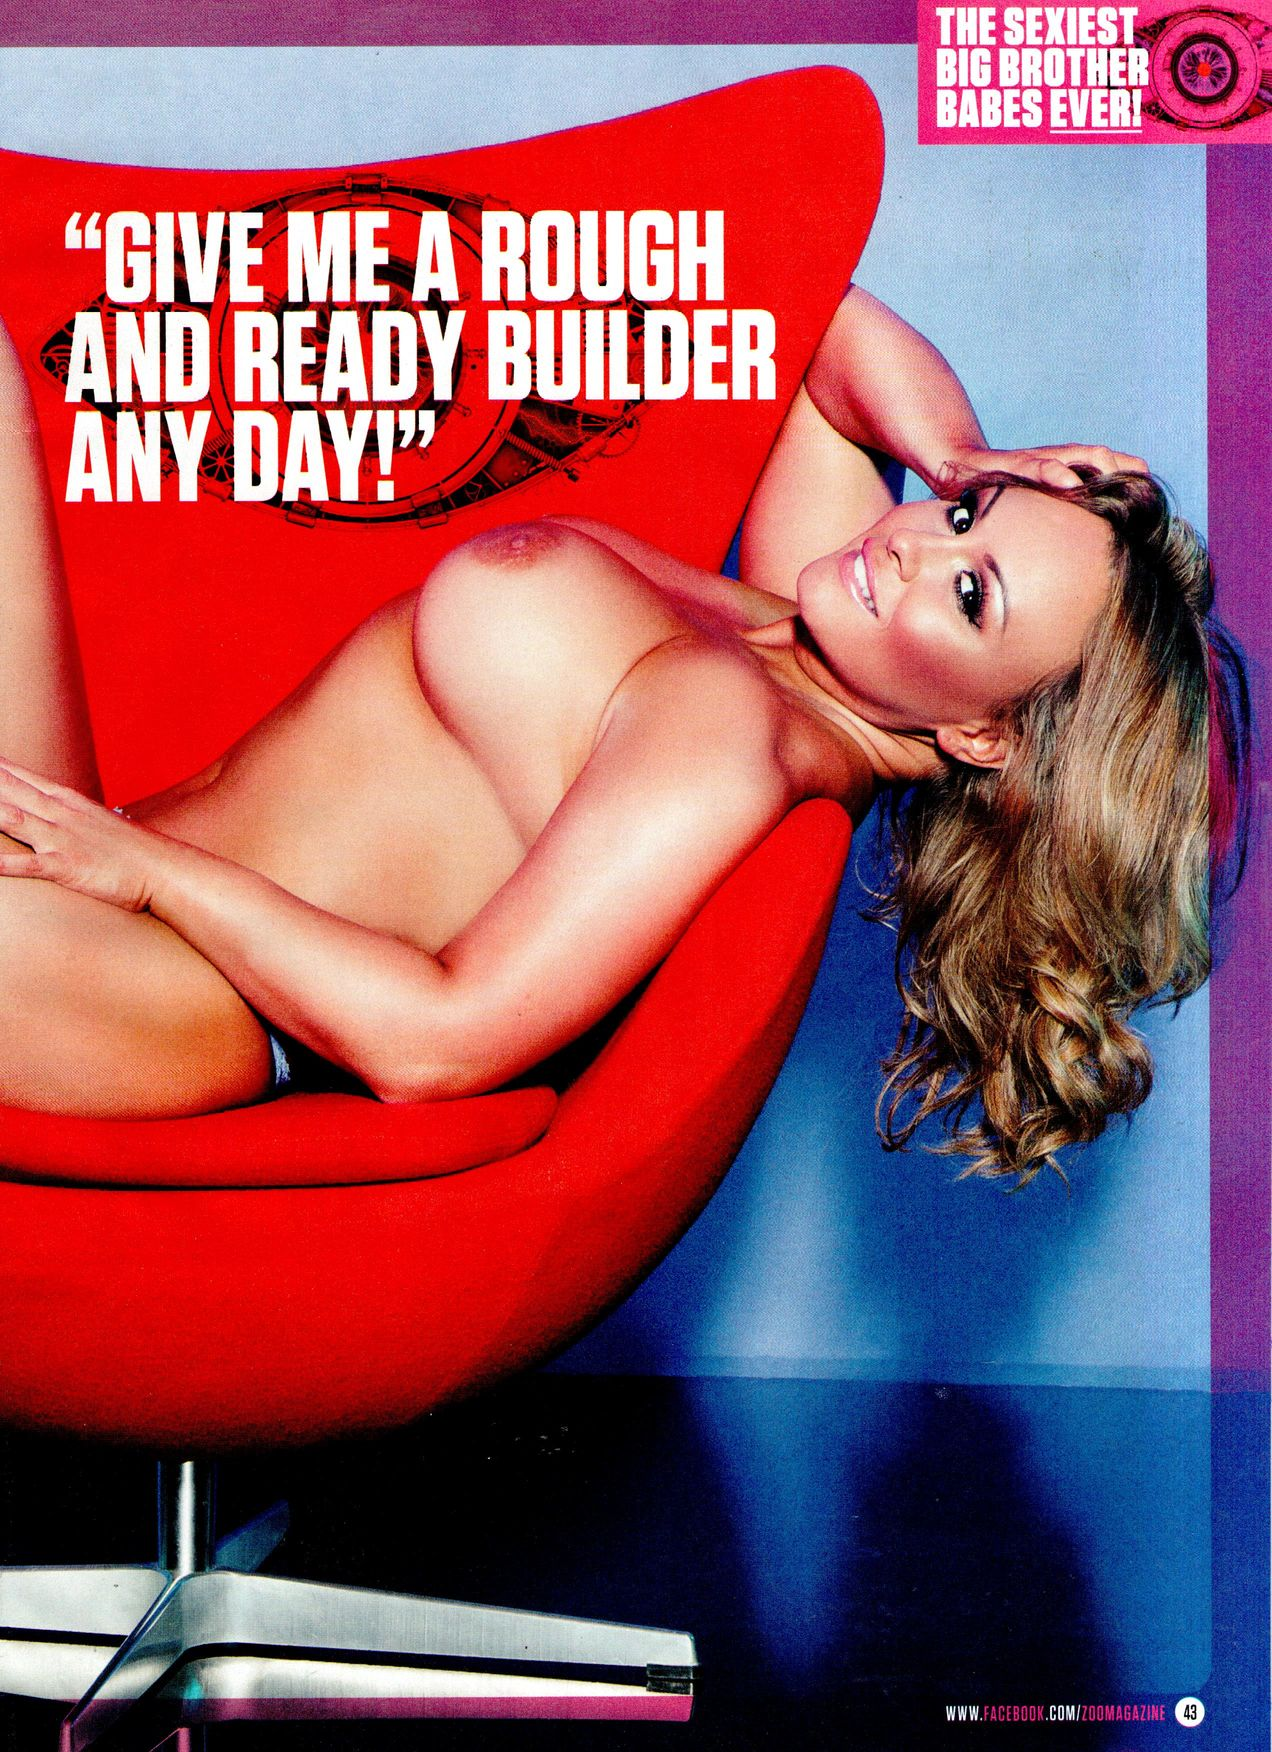 Chanelle hayes sexy naked topless pics remarkable